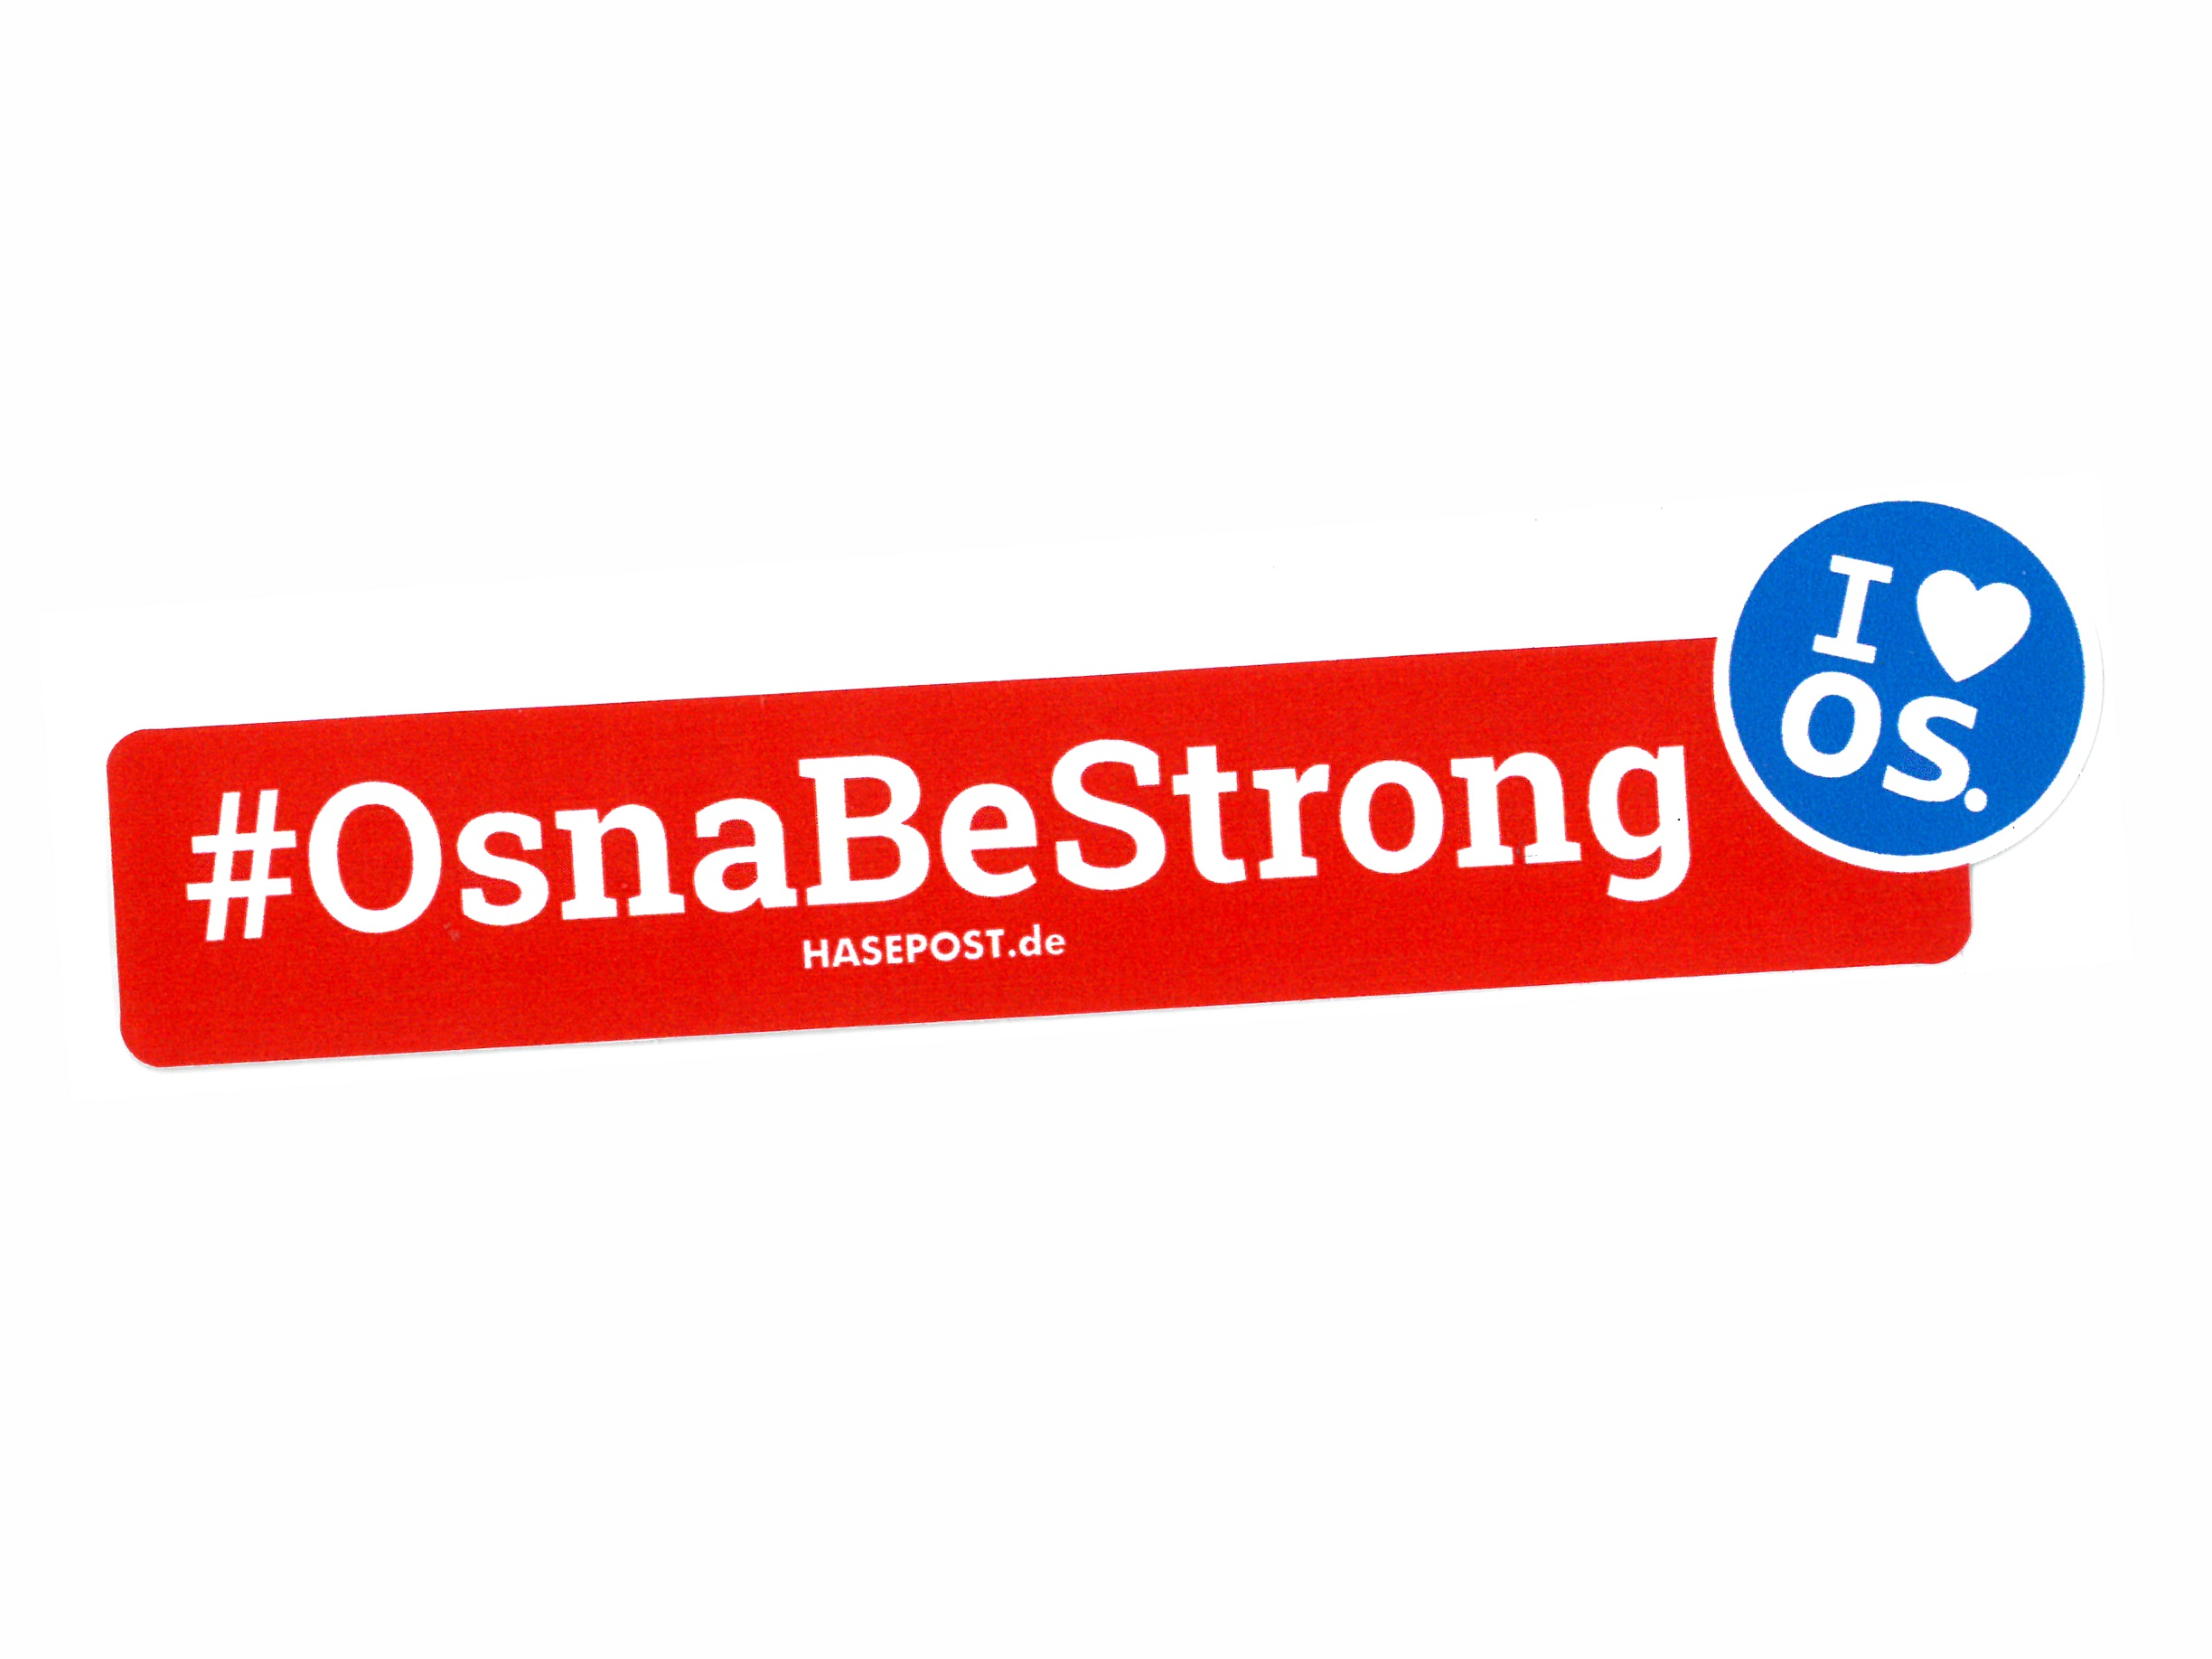 OsnaBeStrong